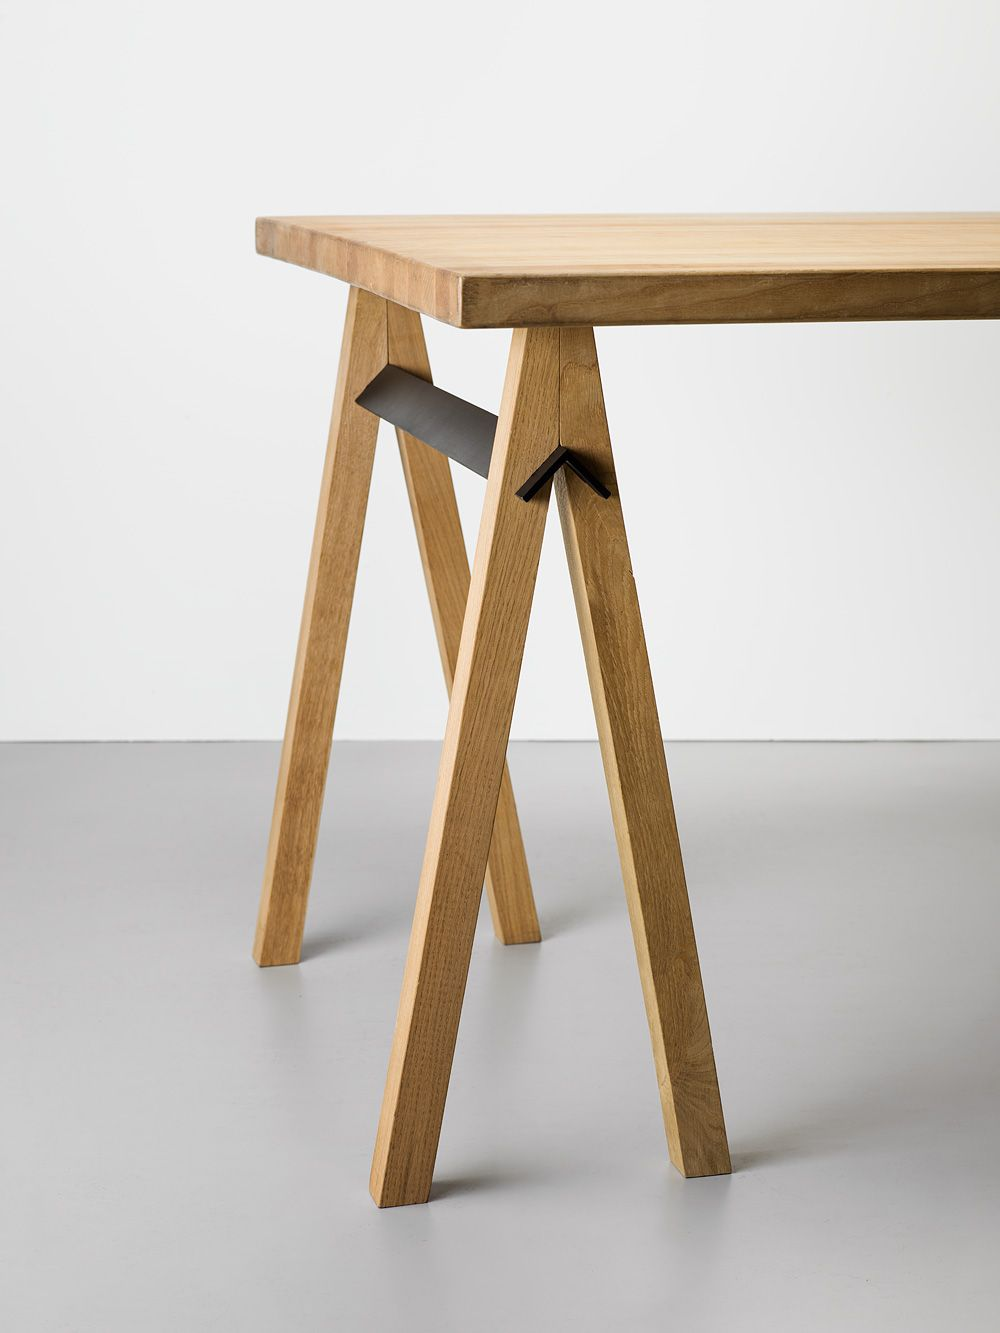 Minimalist Trestle Table Legs That Emble Without Hardware Easy To Put Together And Take Apart Clever Furniture Design